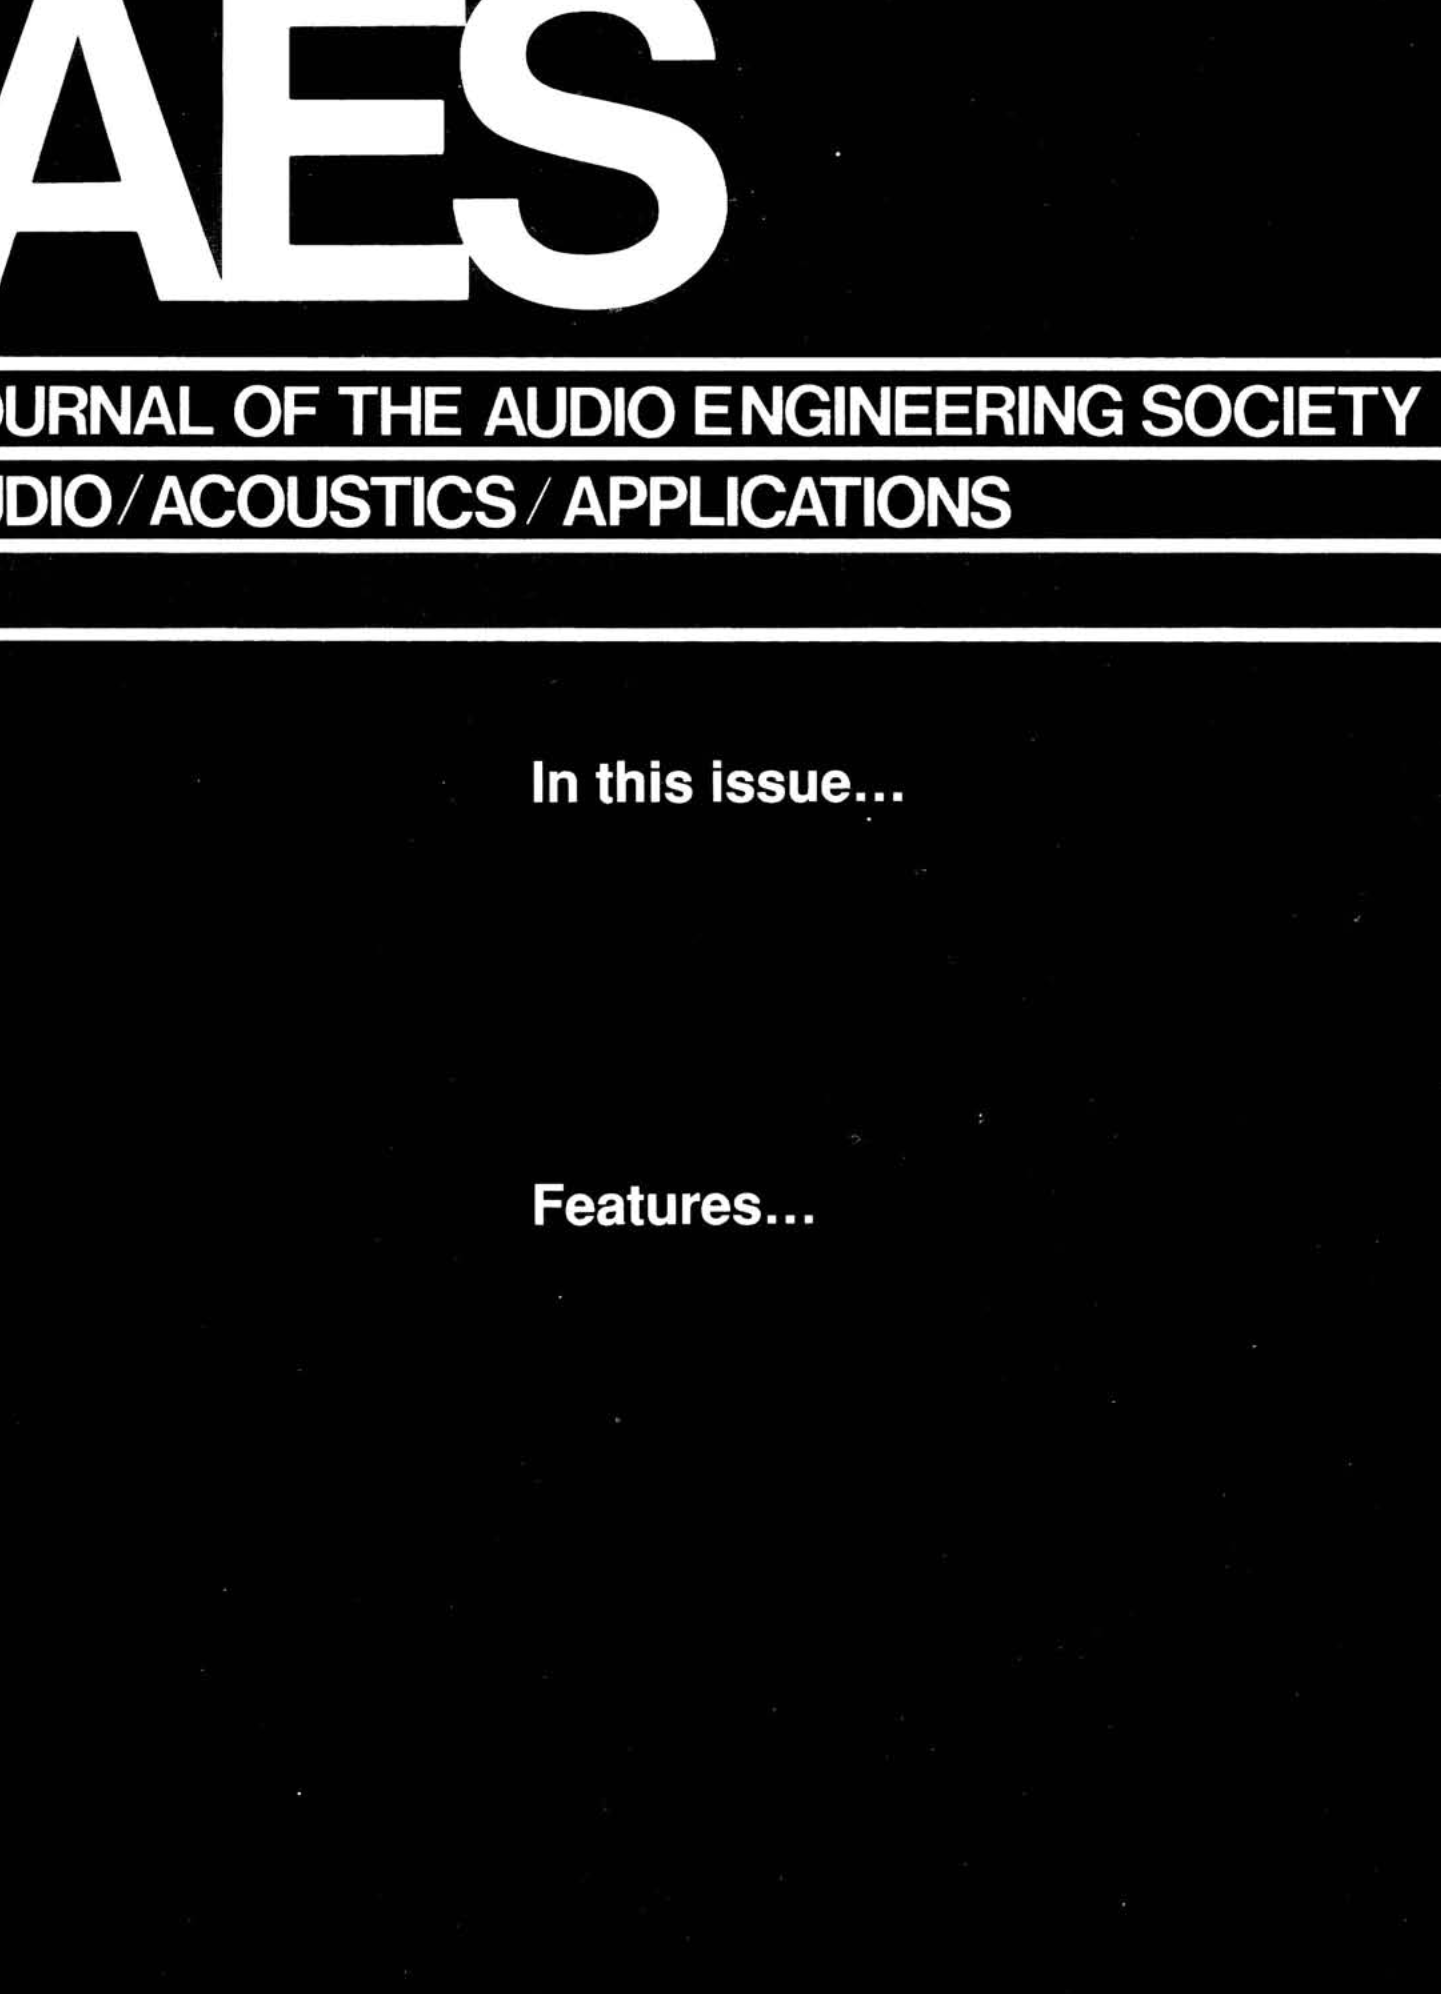 Aes E Library Complete Journal Volume 40 Issue 5 Quasar Uhf Radio Transmitter Pin Schematic And Descriptions